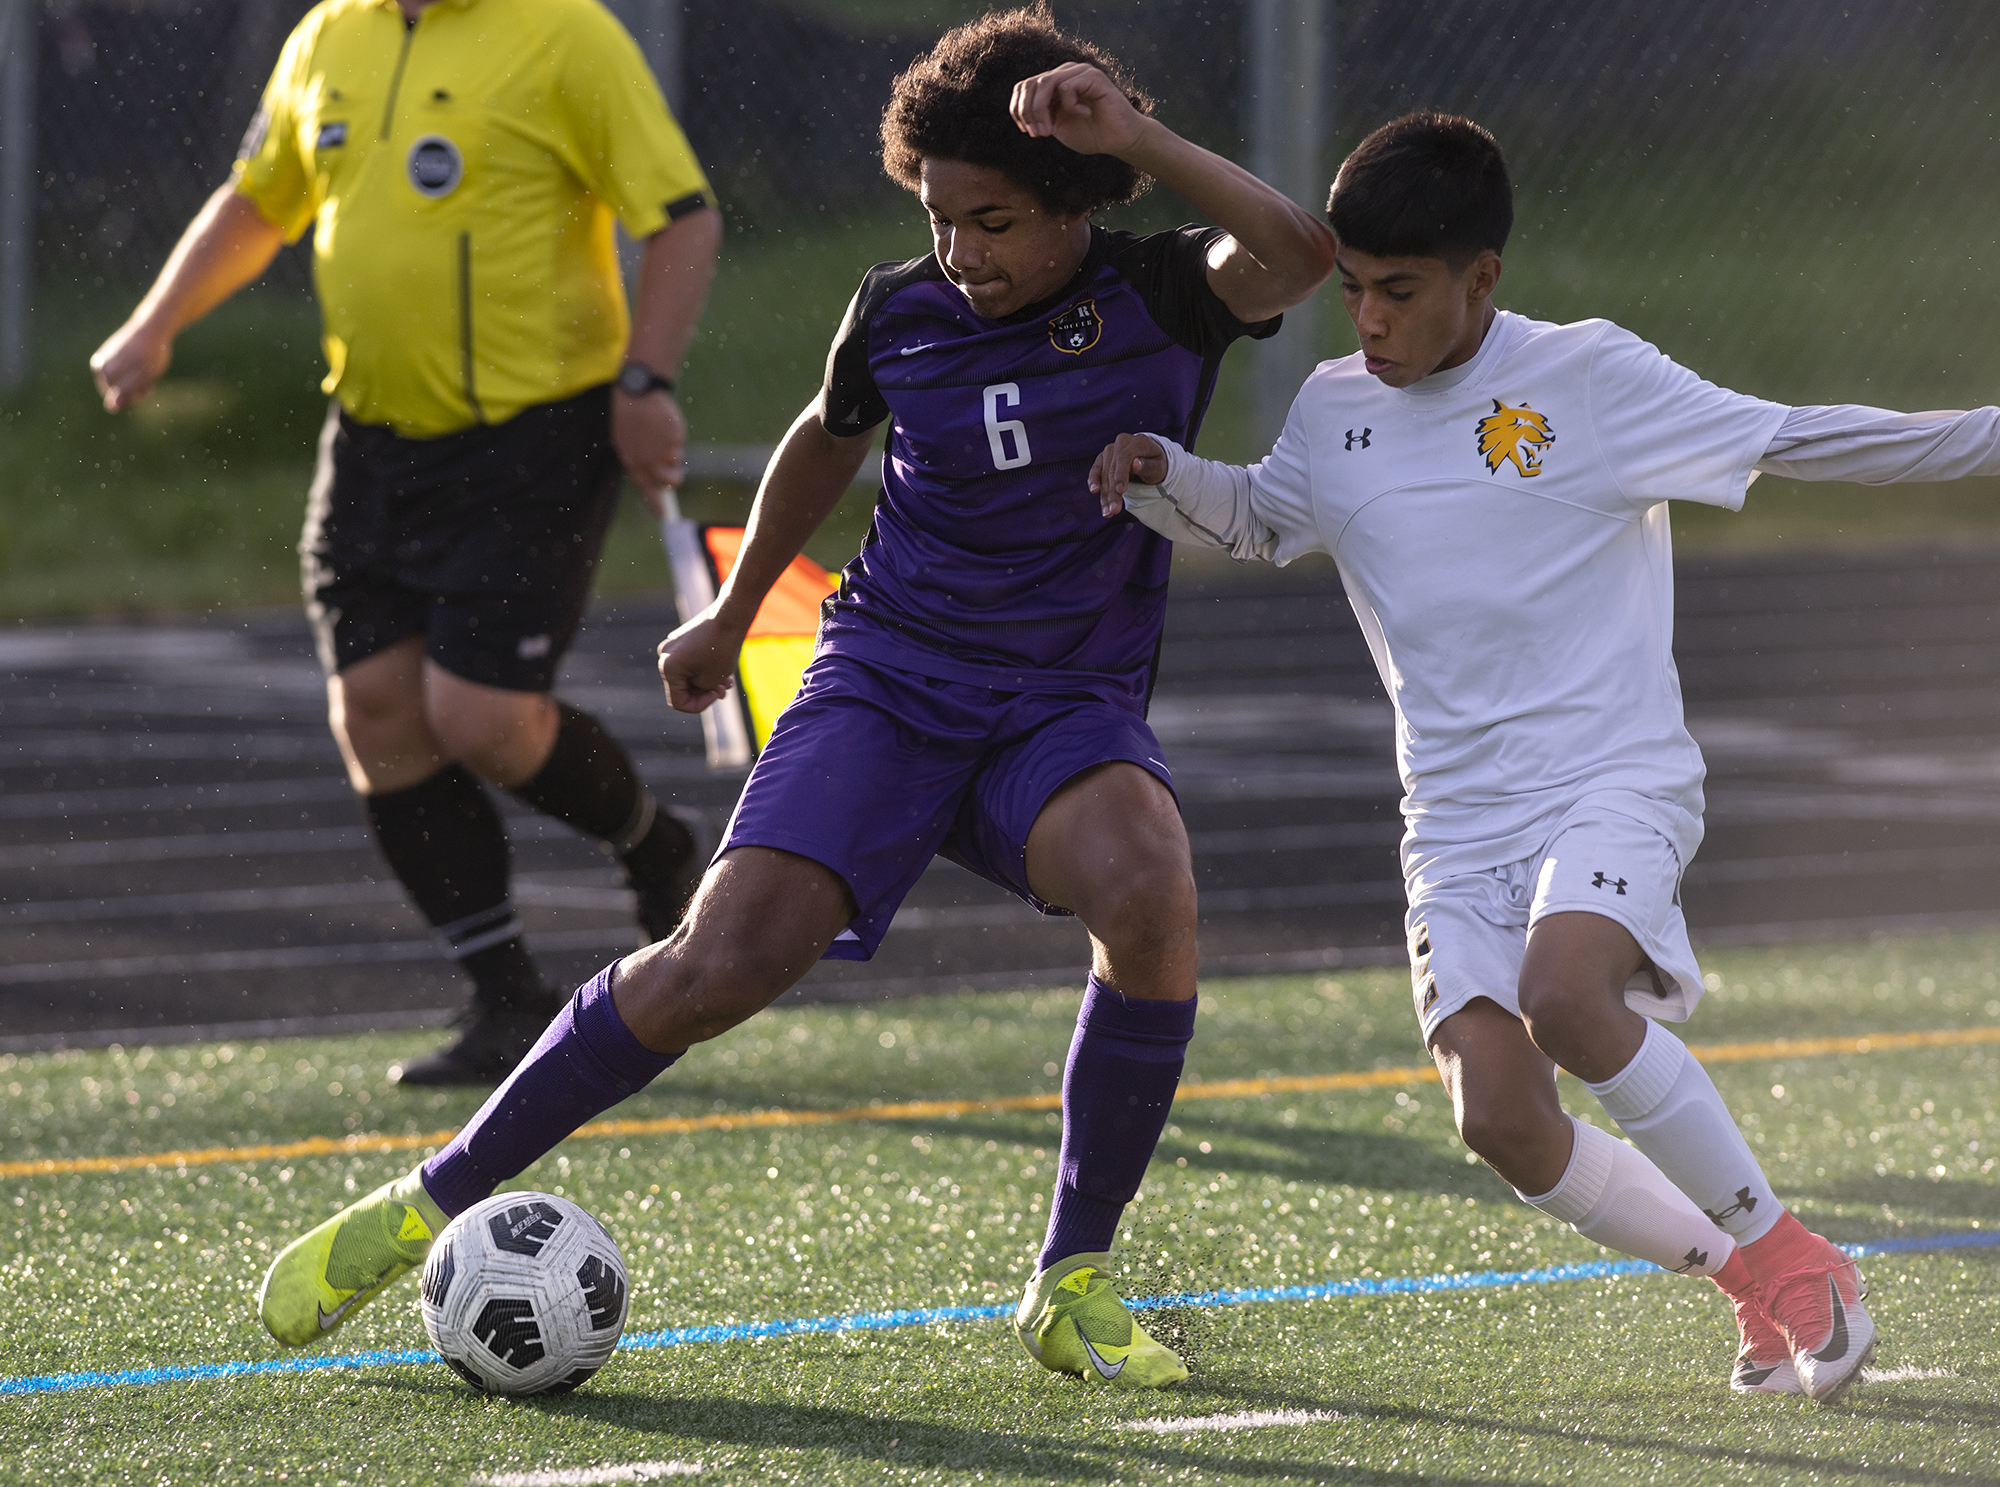 Columbia River's Carver Taylor cuts back against an Aberdeen defender in a 2A Southwest District boys soccer semifinal on Thursday, May 6, 2021, at Columbia River High School. The Rapids topped Aberdeen 2-0 to advance to Saturday's championship game against Tumwater.